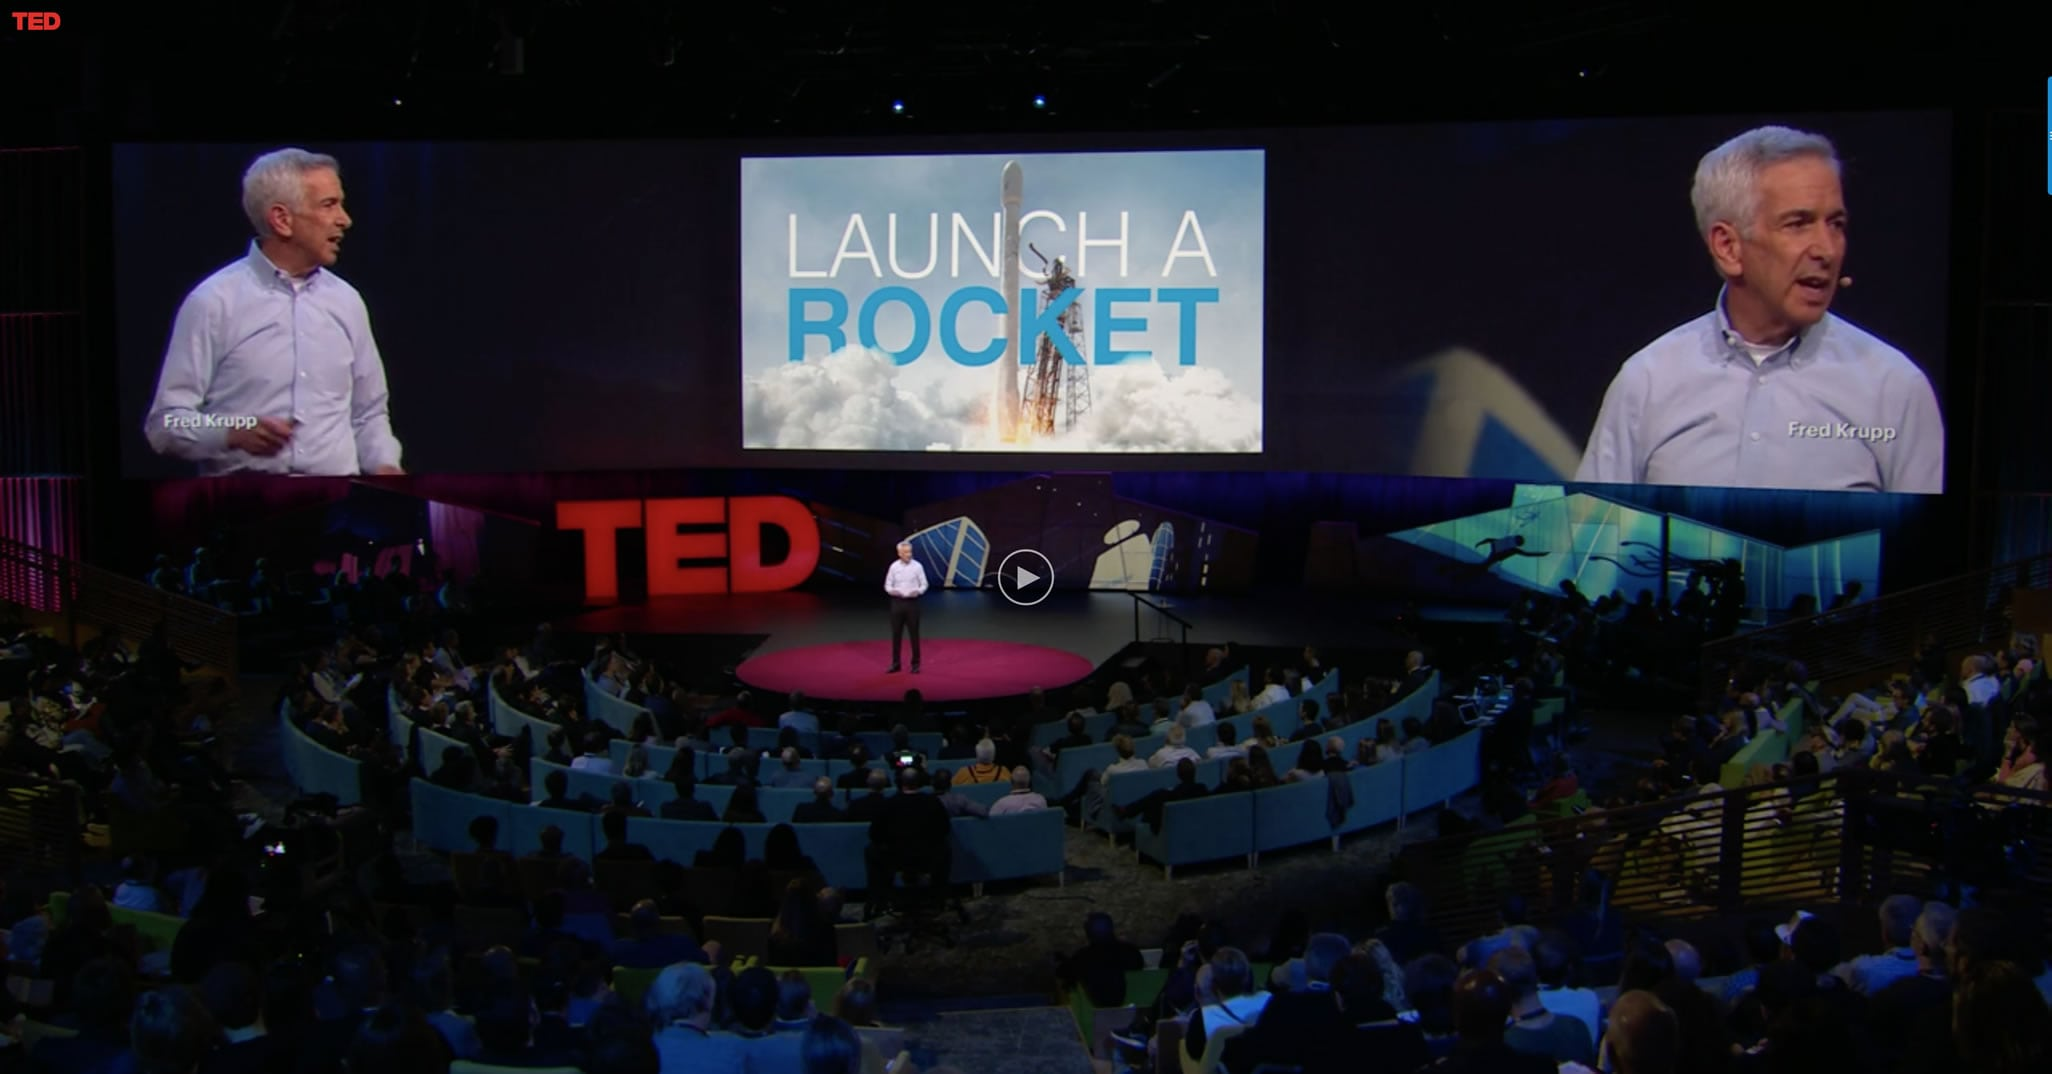 This TED Talk heralds a new era in fighting climate change, from space